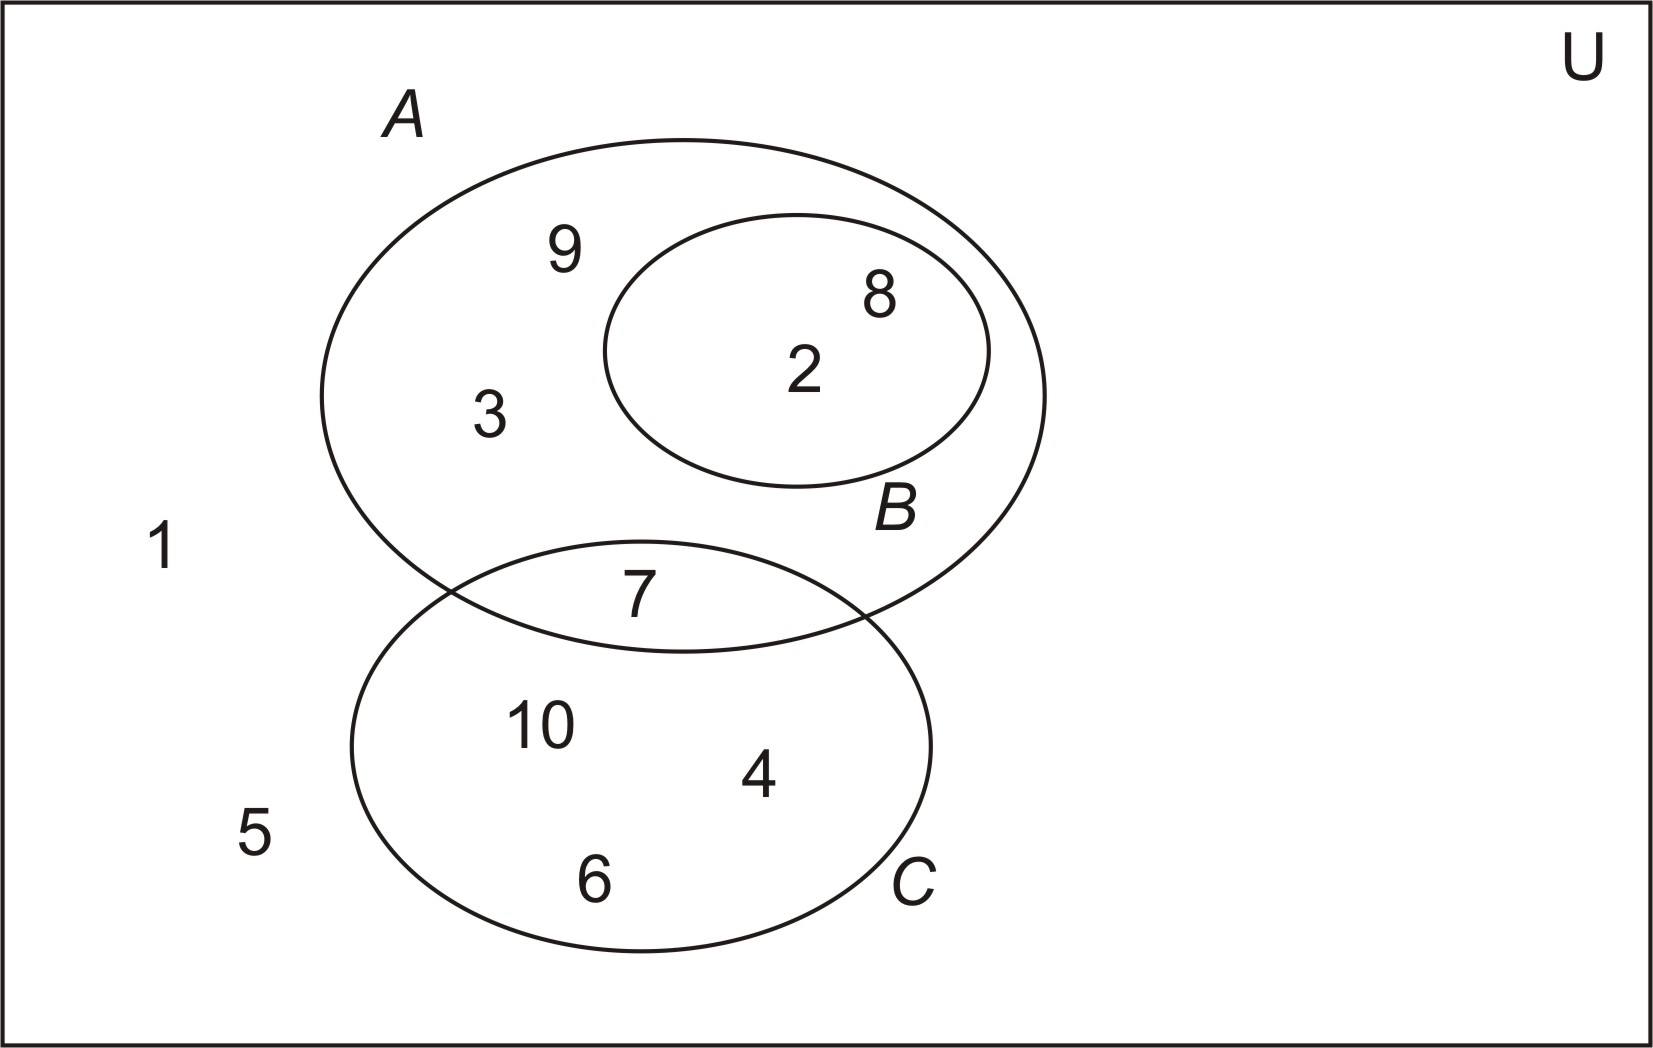 Set Theory Venn Diagram Problems And Solutions